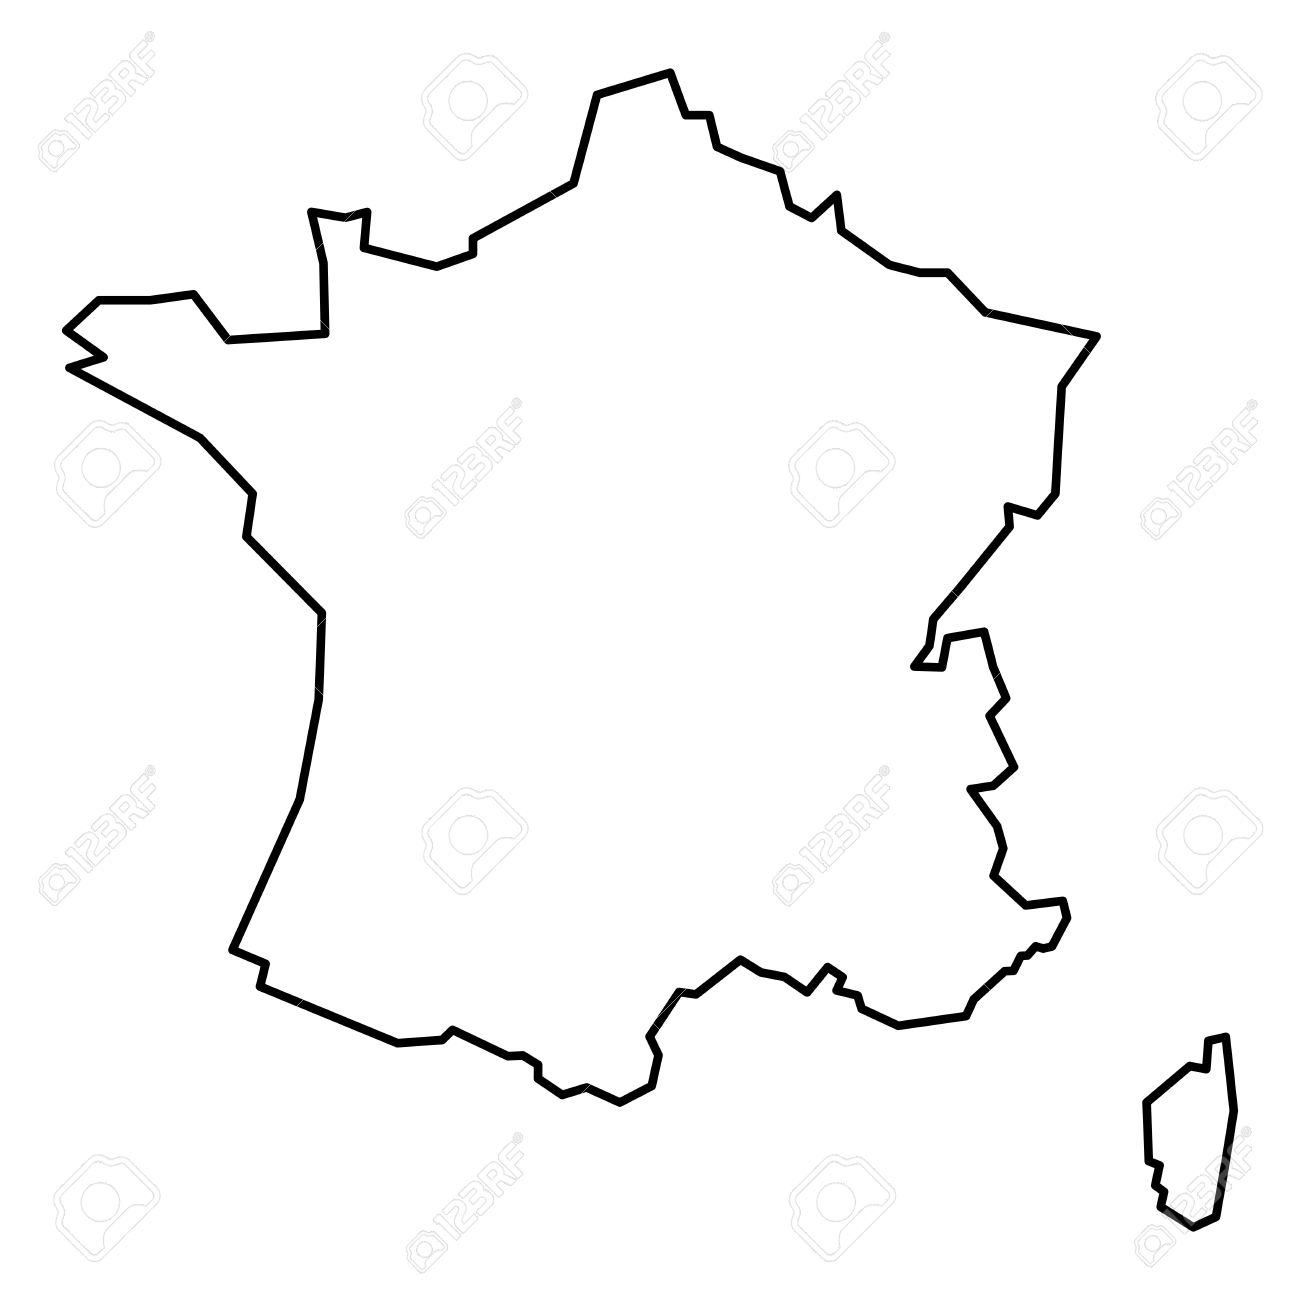 carte france noir et blanc Simple Carte De Contour De La France. Noir Fond De Carte Isolé Sur